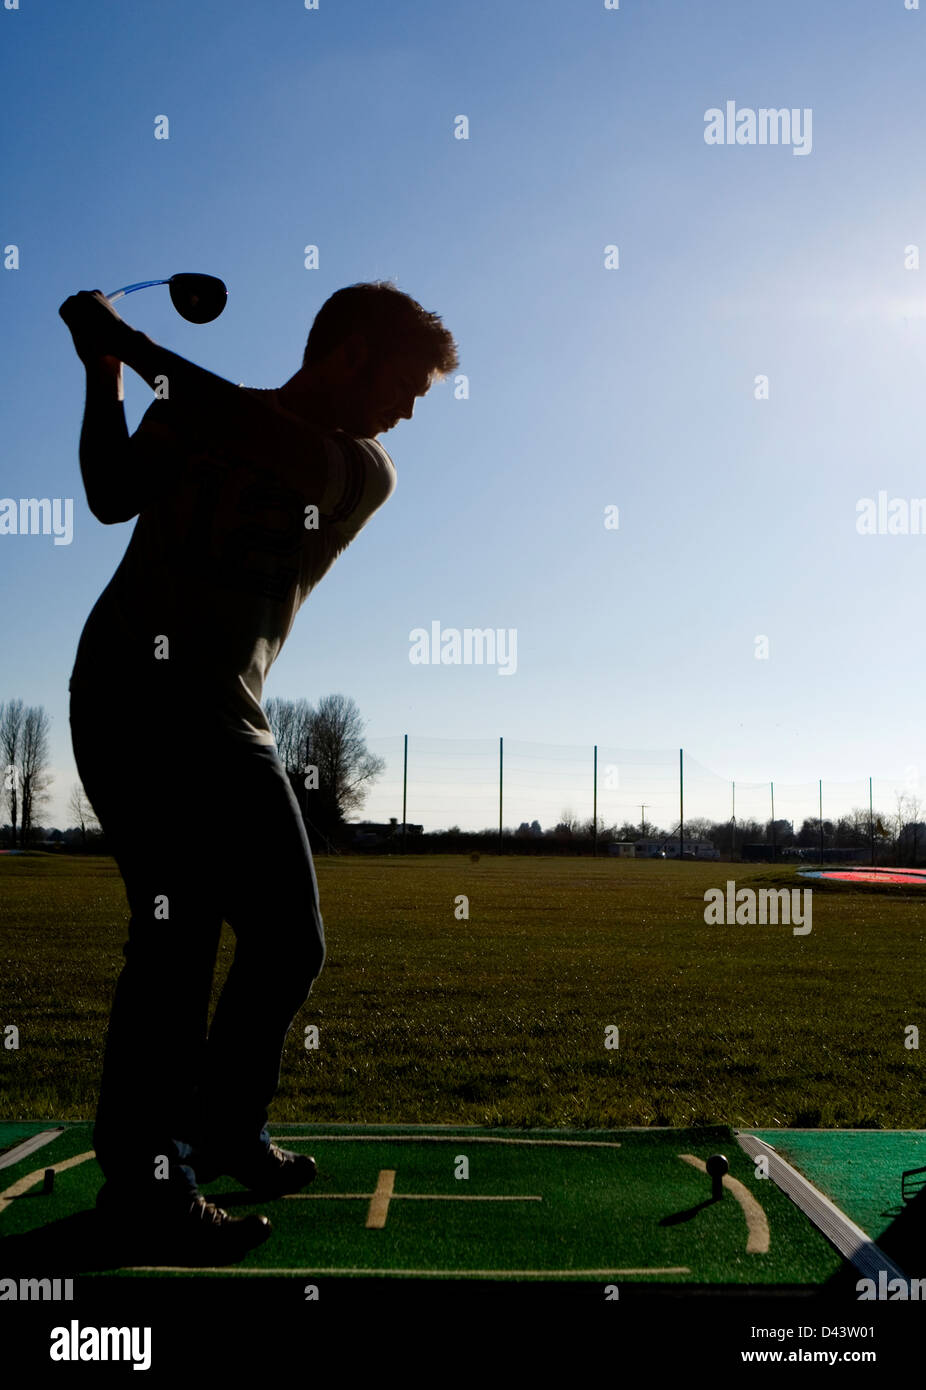 man silhouette at the driving range - Stock Image